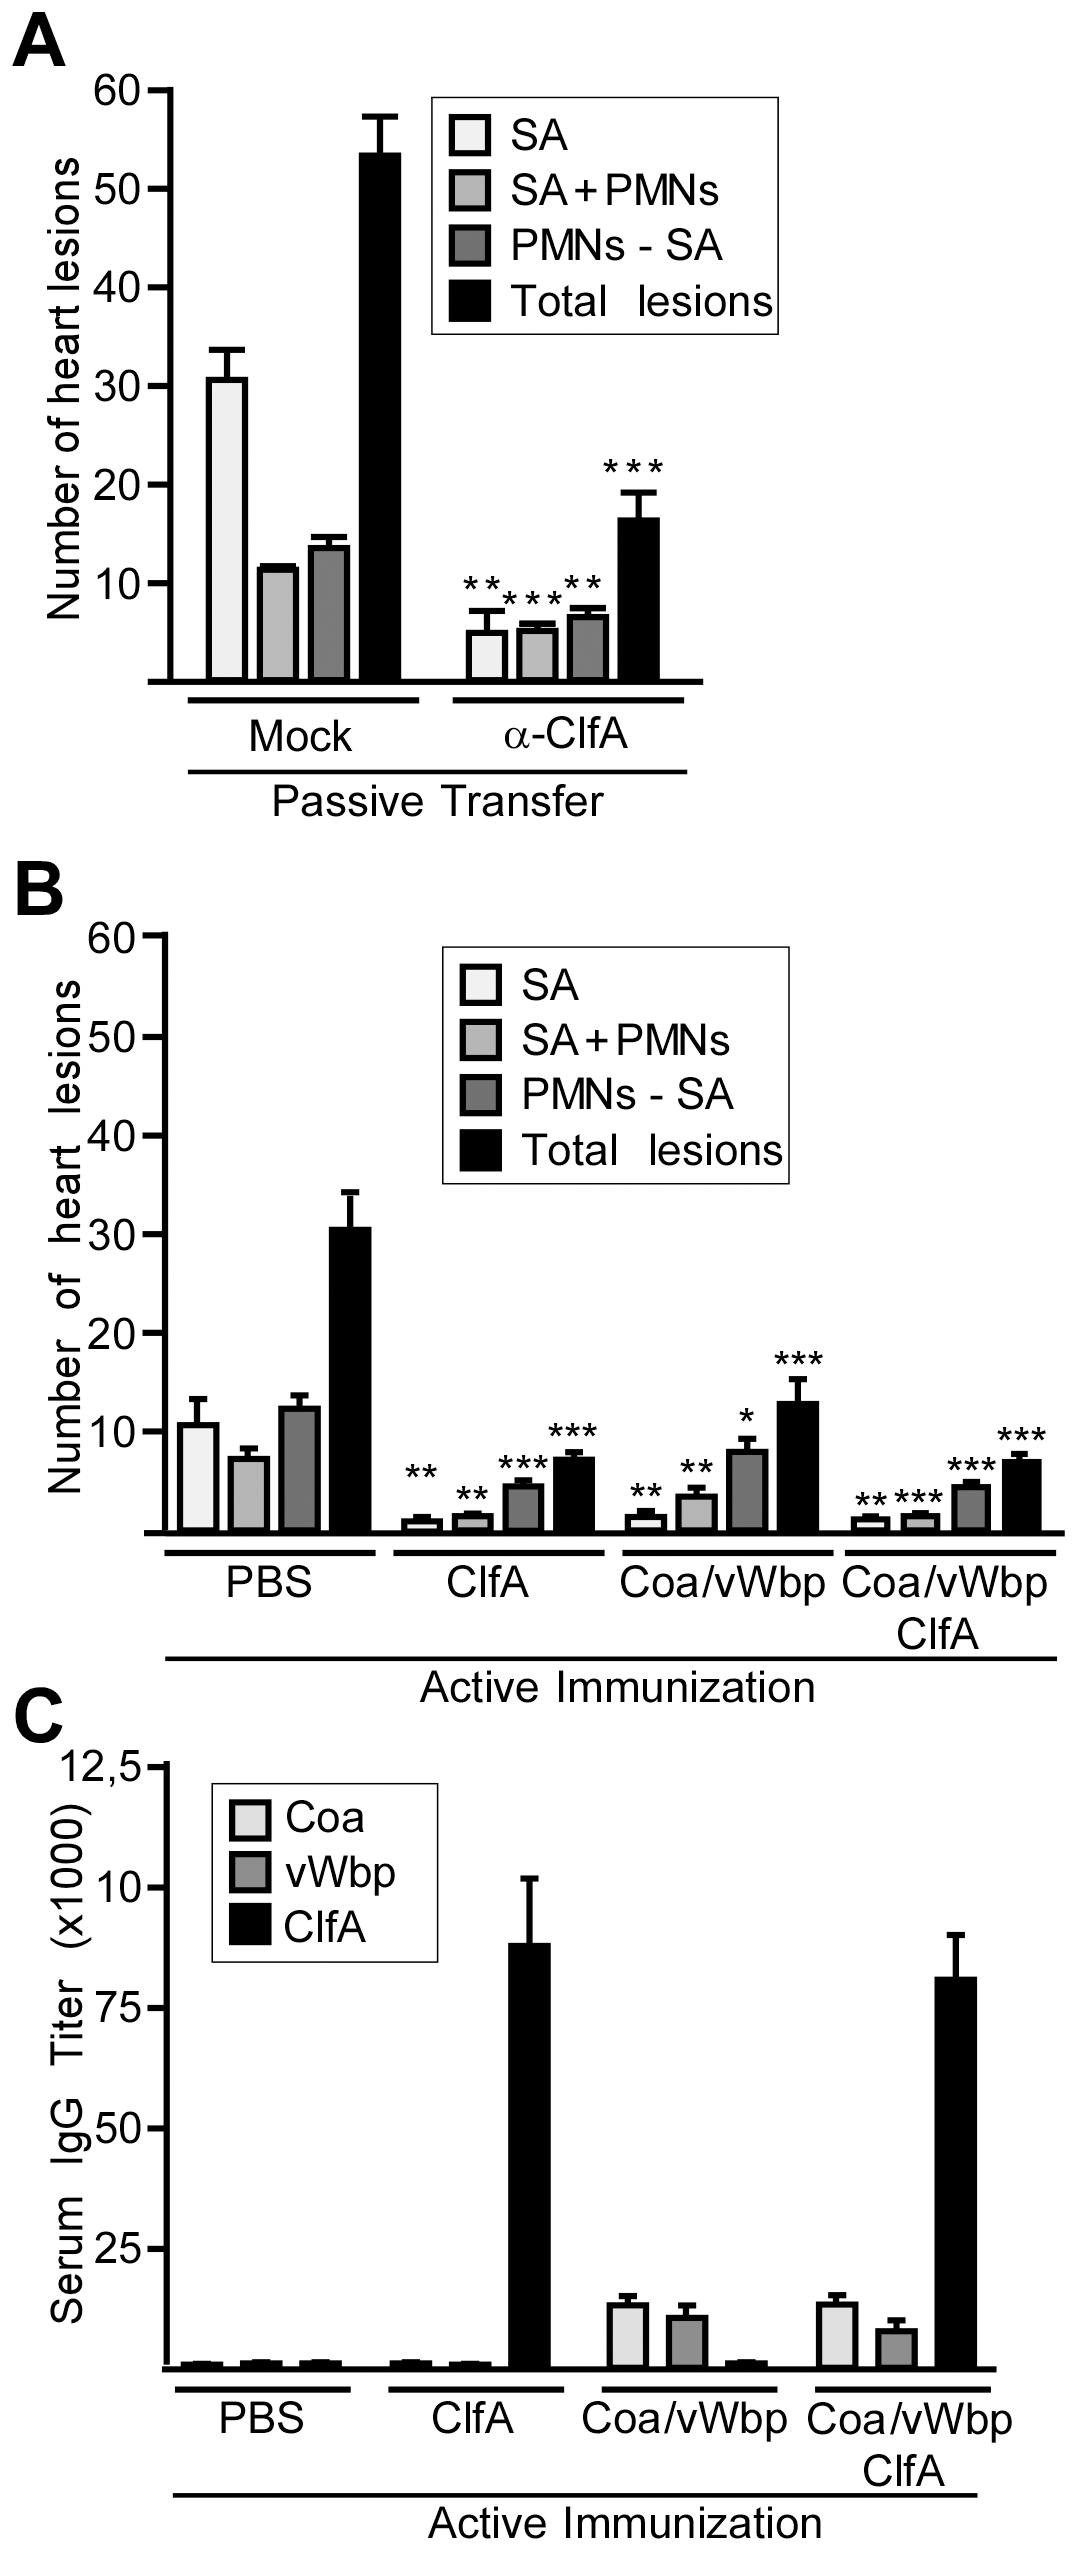 Neutralization of coagulases and ClfA prevents staphylococcal agglutination in heart tissues of septic mice.